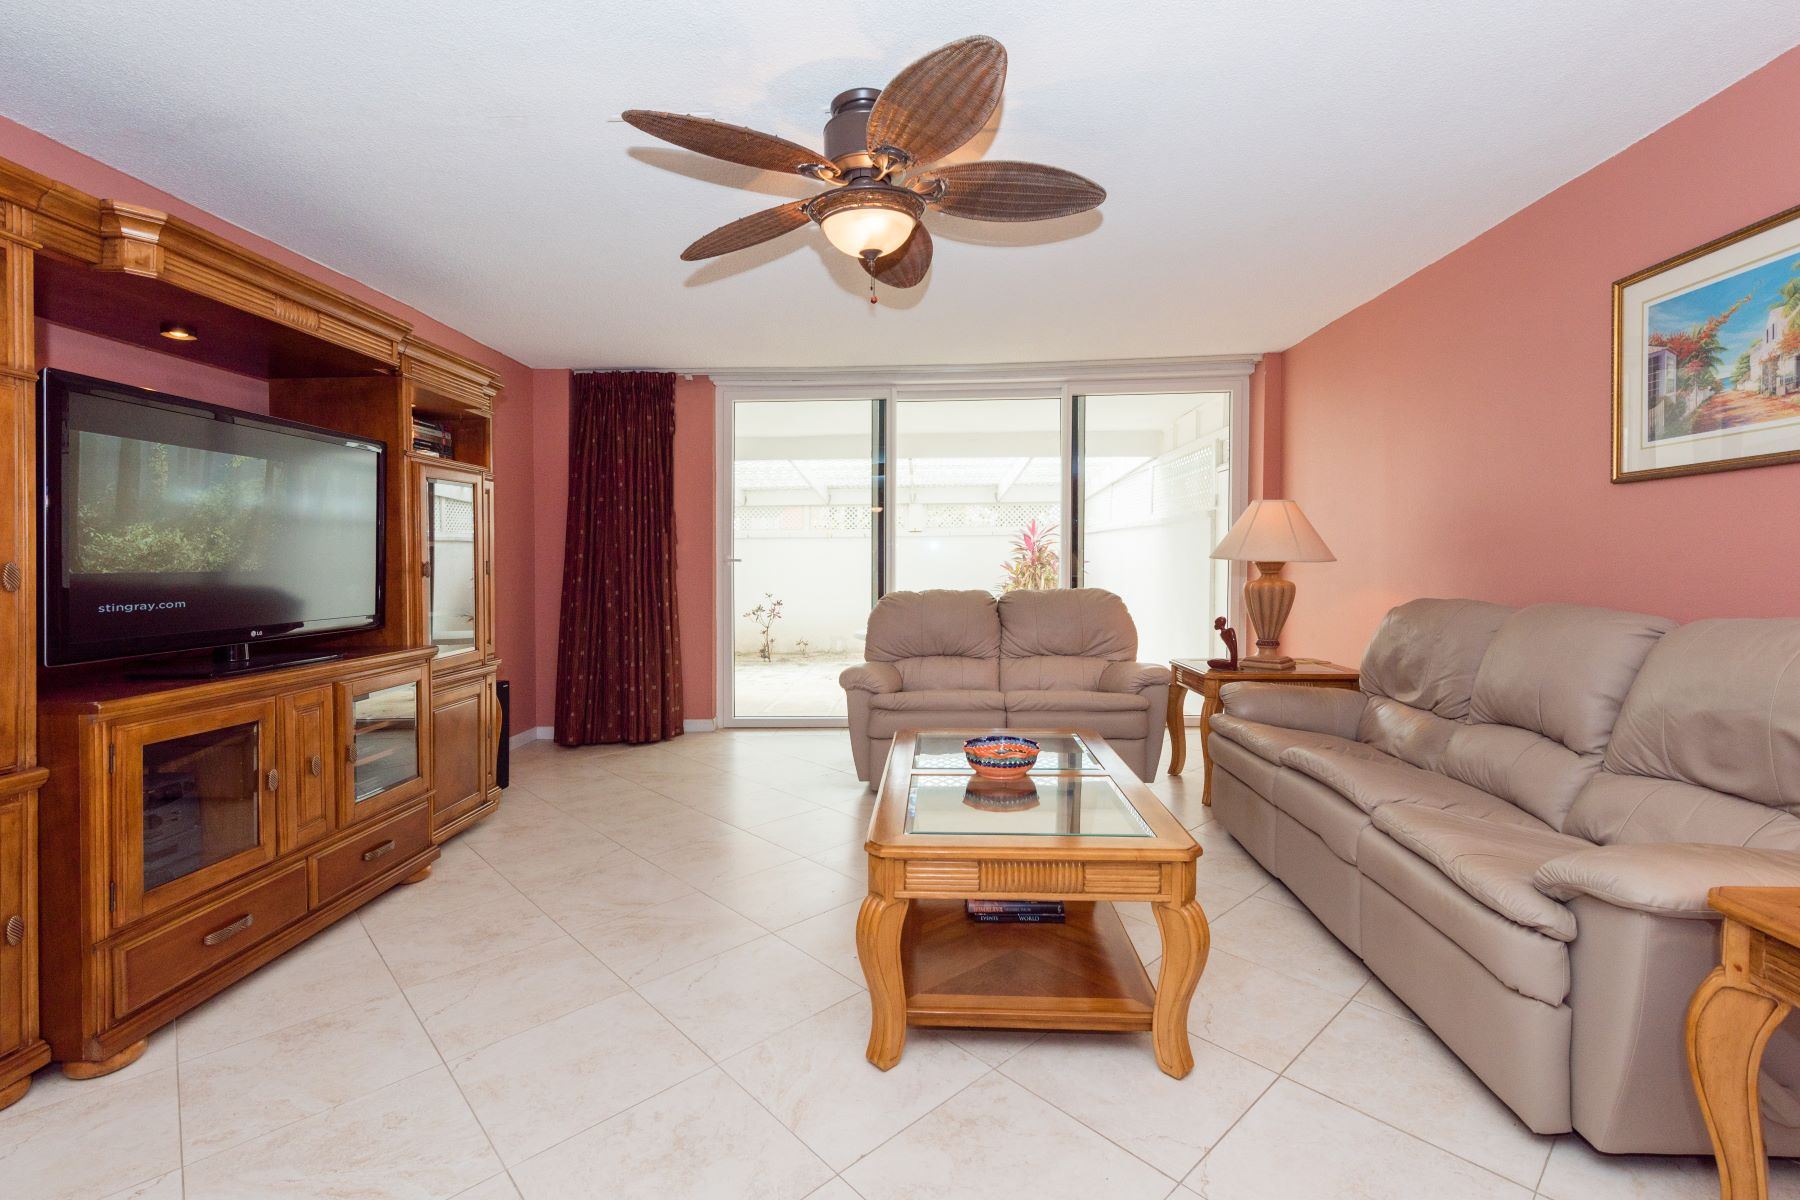 Condominium for Sale at Beachfront Condominum, Conchrest 1A Conchrest, Cable Beach, Nassau And Paradise Island Bahamas